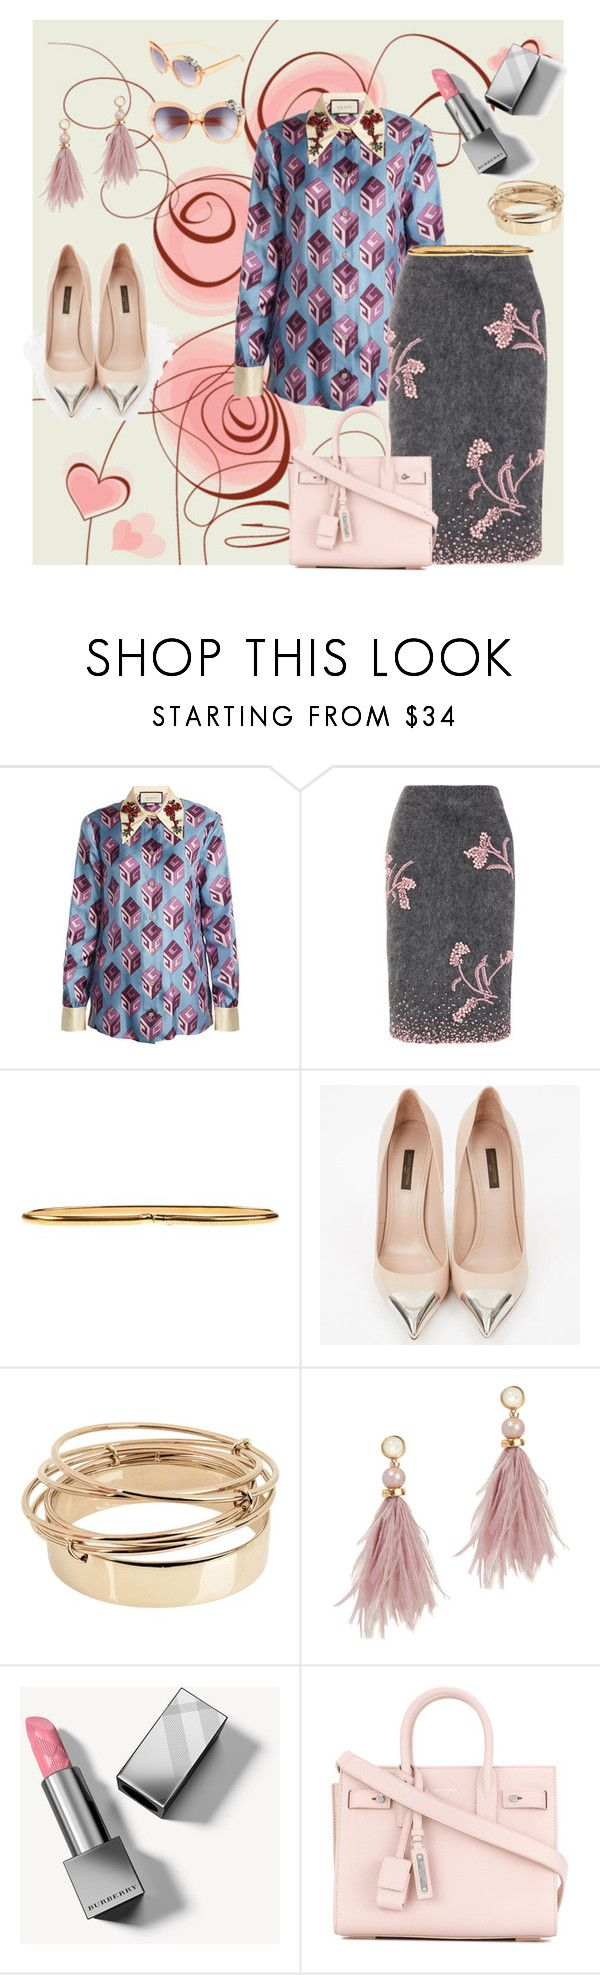 """""""Be my valentine"""" by walerie ❤ liked on Polyvore featuring Gucci, Prada, Carla G., Louis Vuitton, Valentino, Lizzie Fortunato, Burberry, Yves Saint Laurent and BP."""